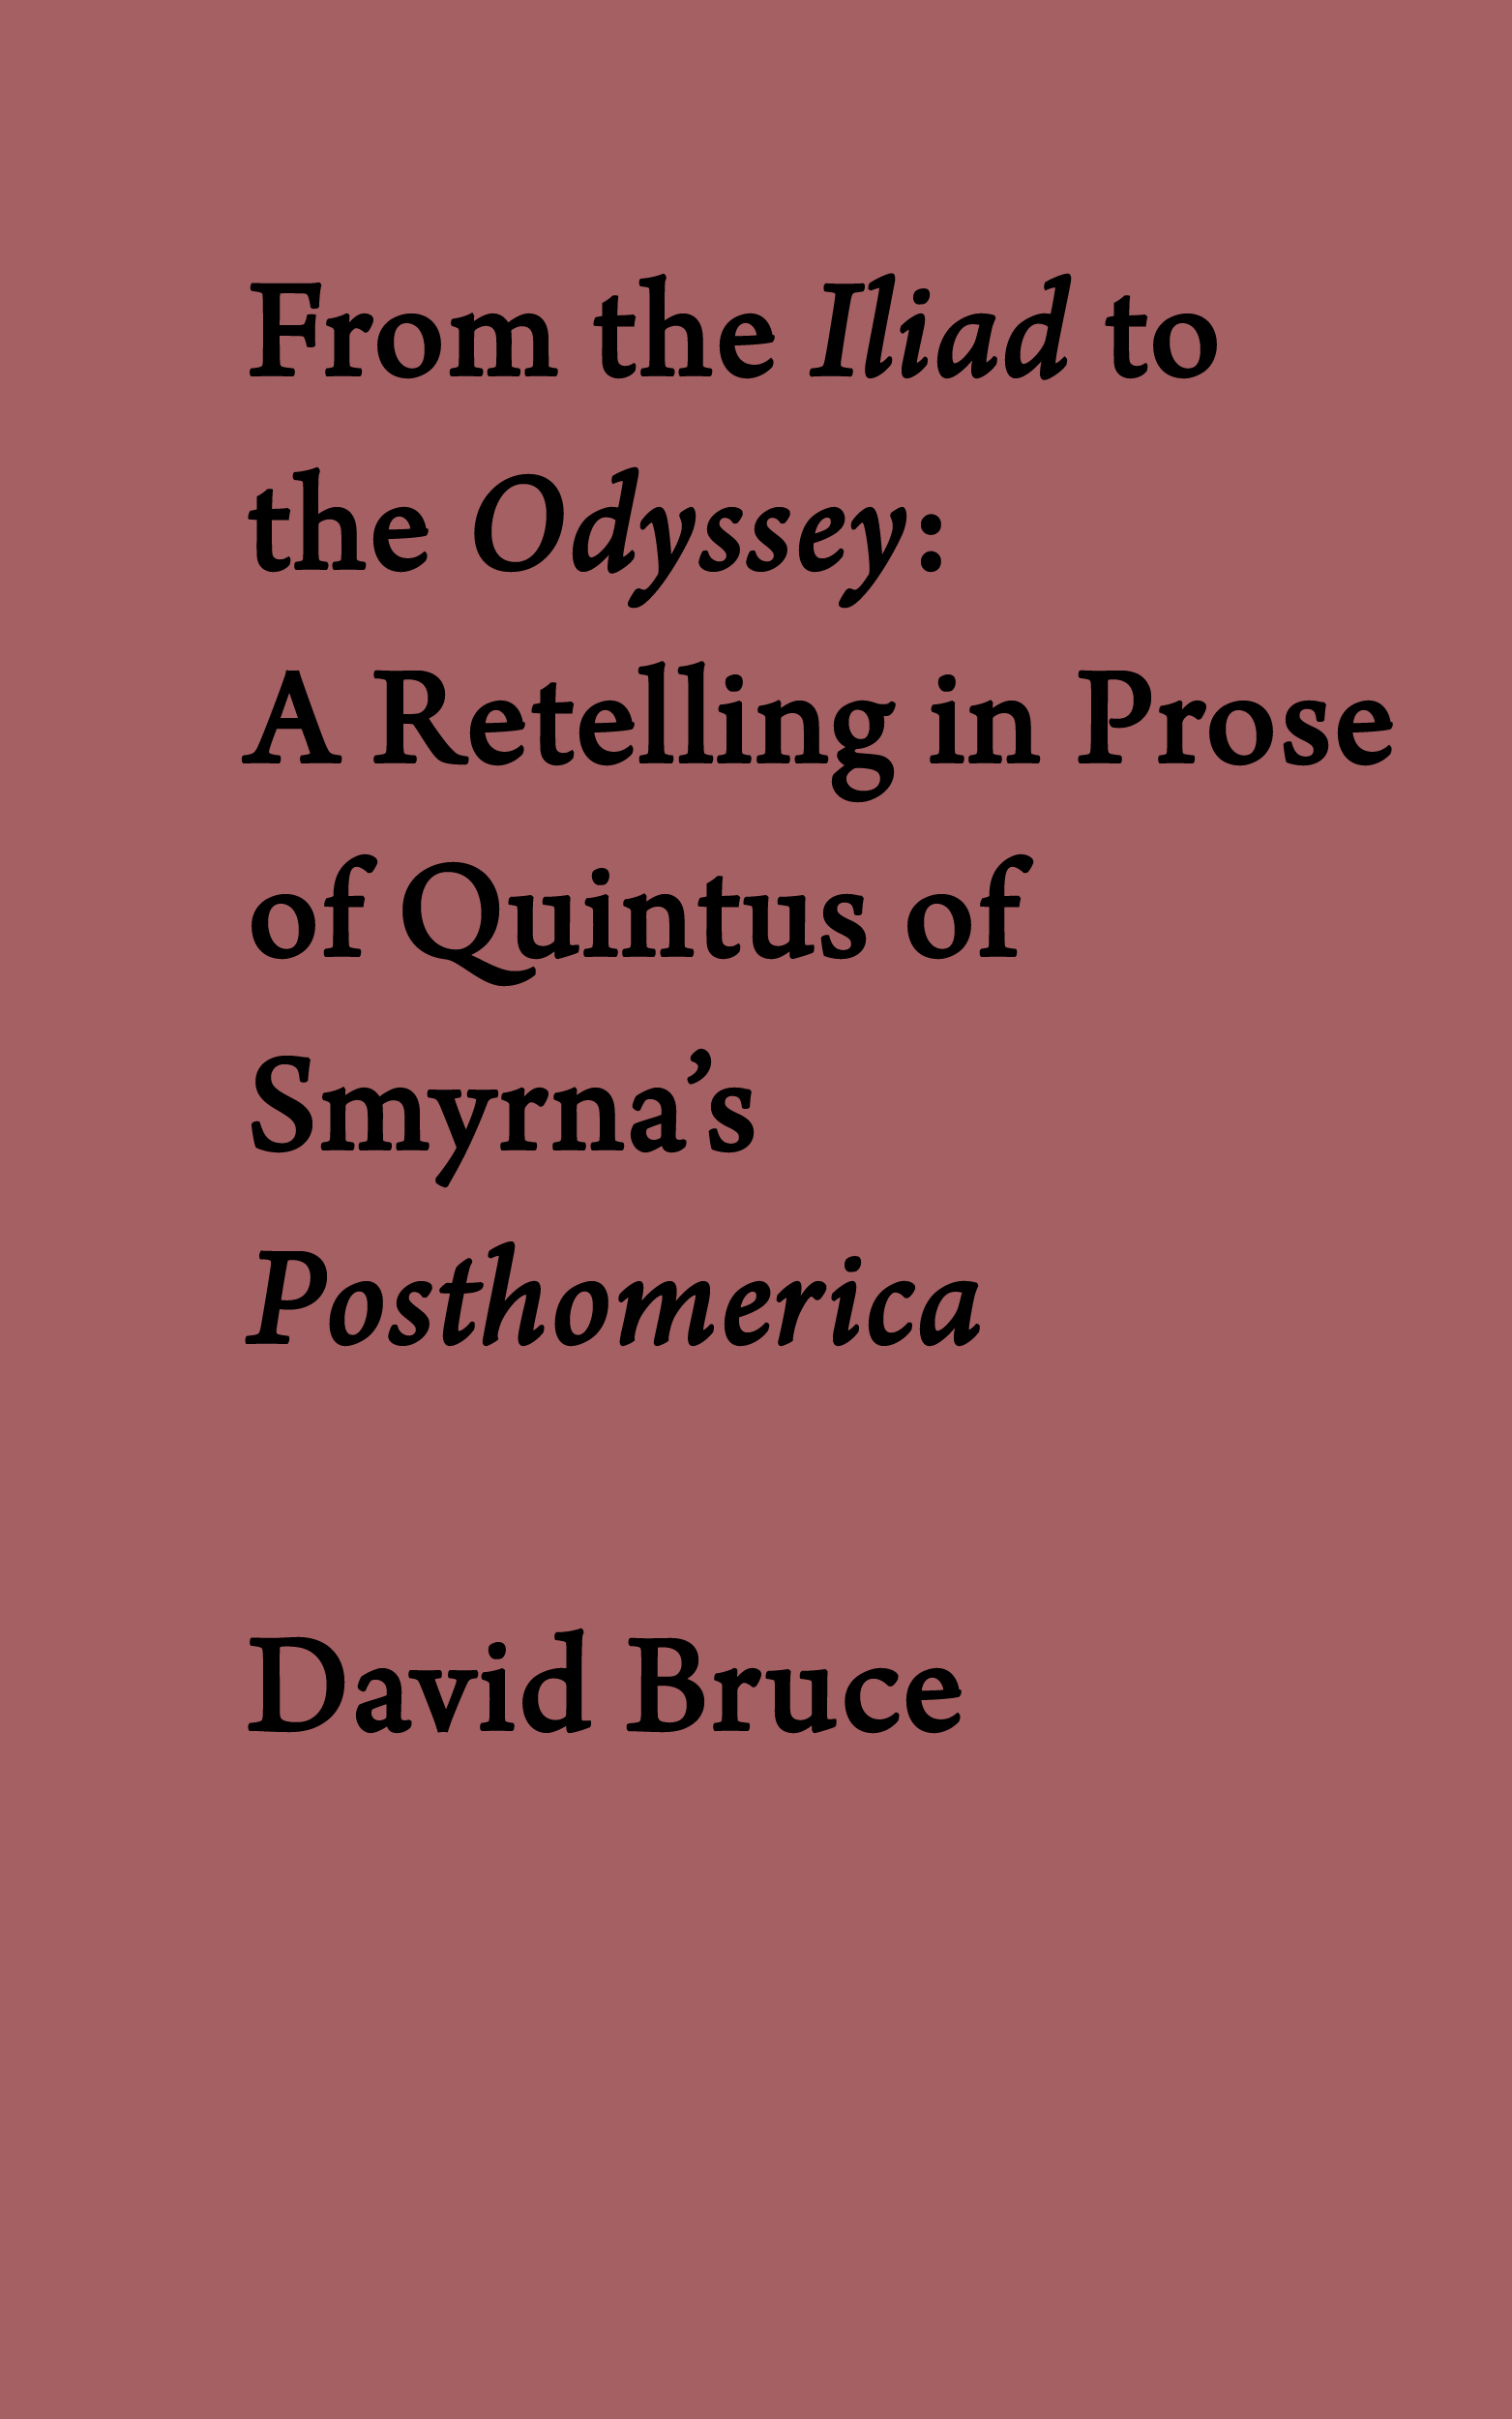 From the Iliad to the Odyssey: A Retelling in Prose of  Quintus of Smyrna's Posthomerica